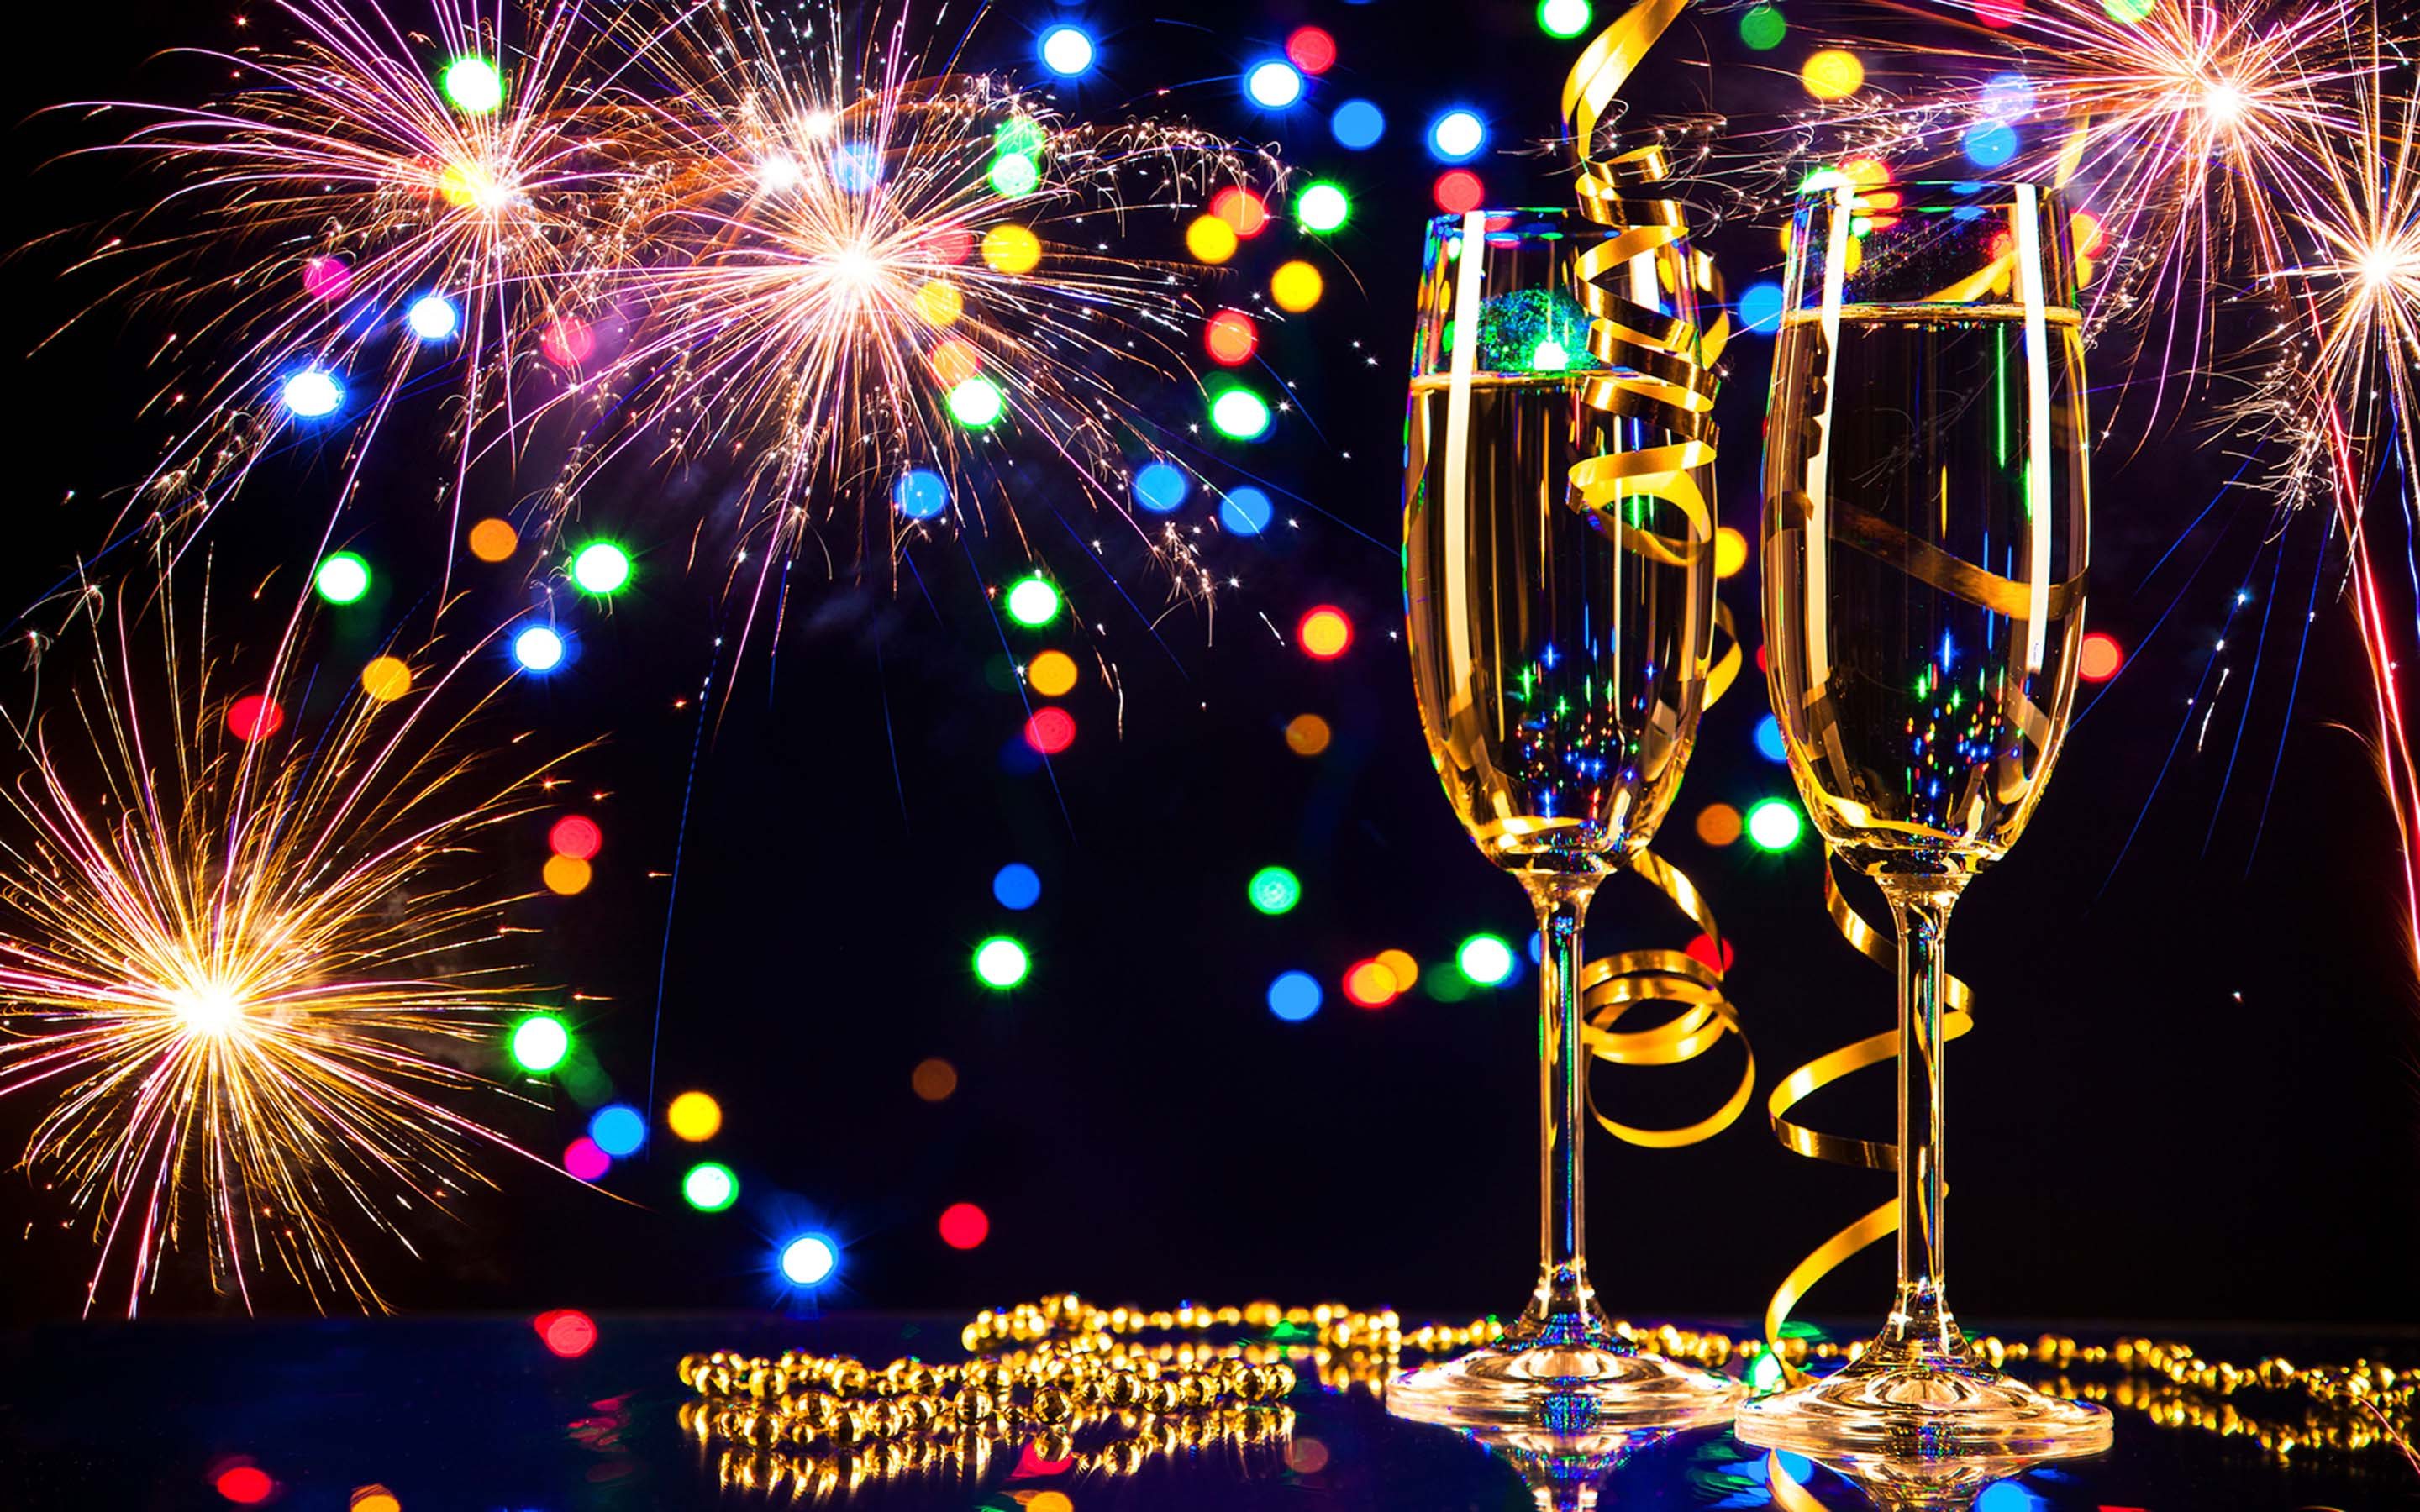 Happy New Year 2020 Glasses Of Champagne And Fireworks Desktop 2880x1800